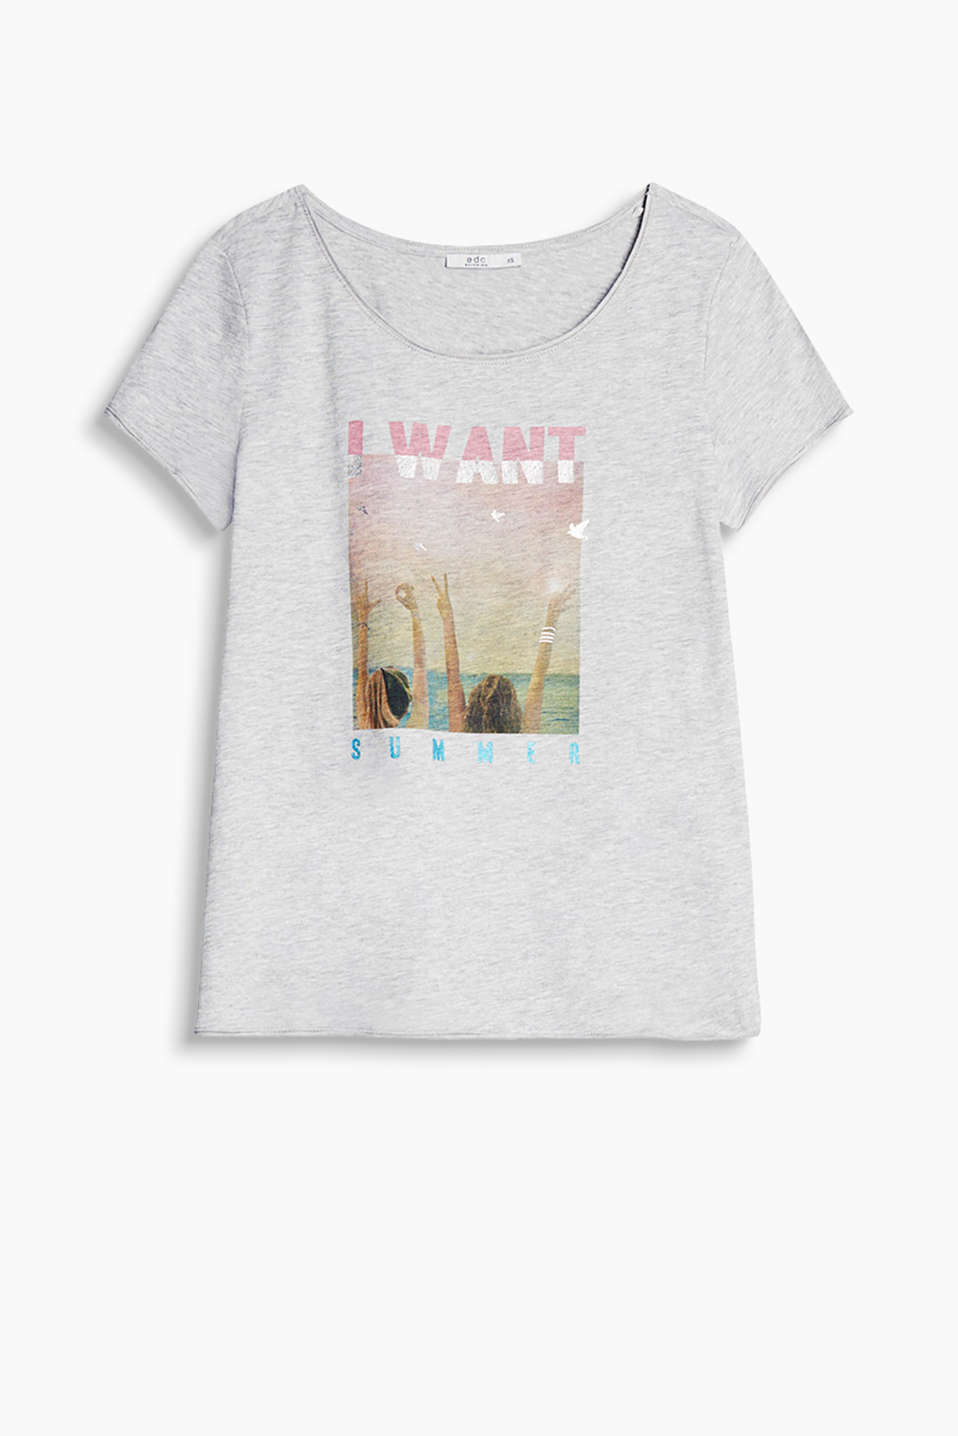 Melange, cotton-jersey T-shirt with a partially shimmering photo print